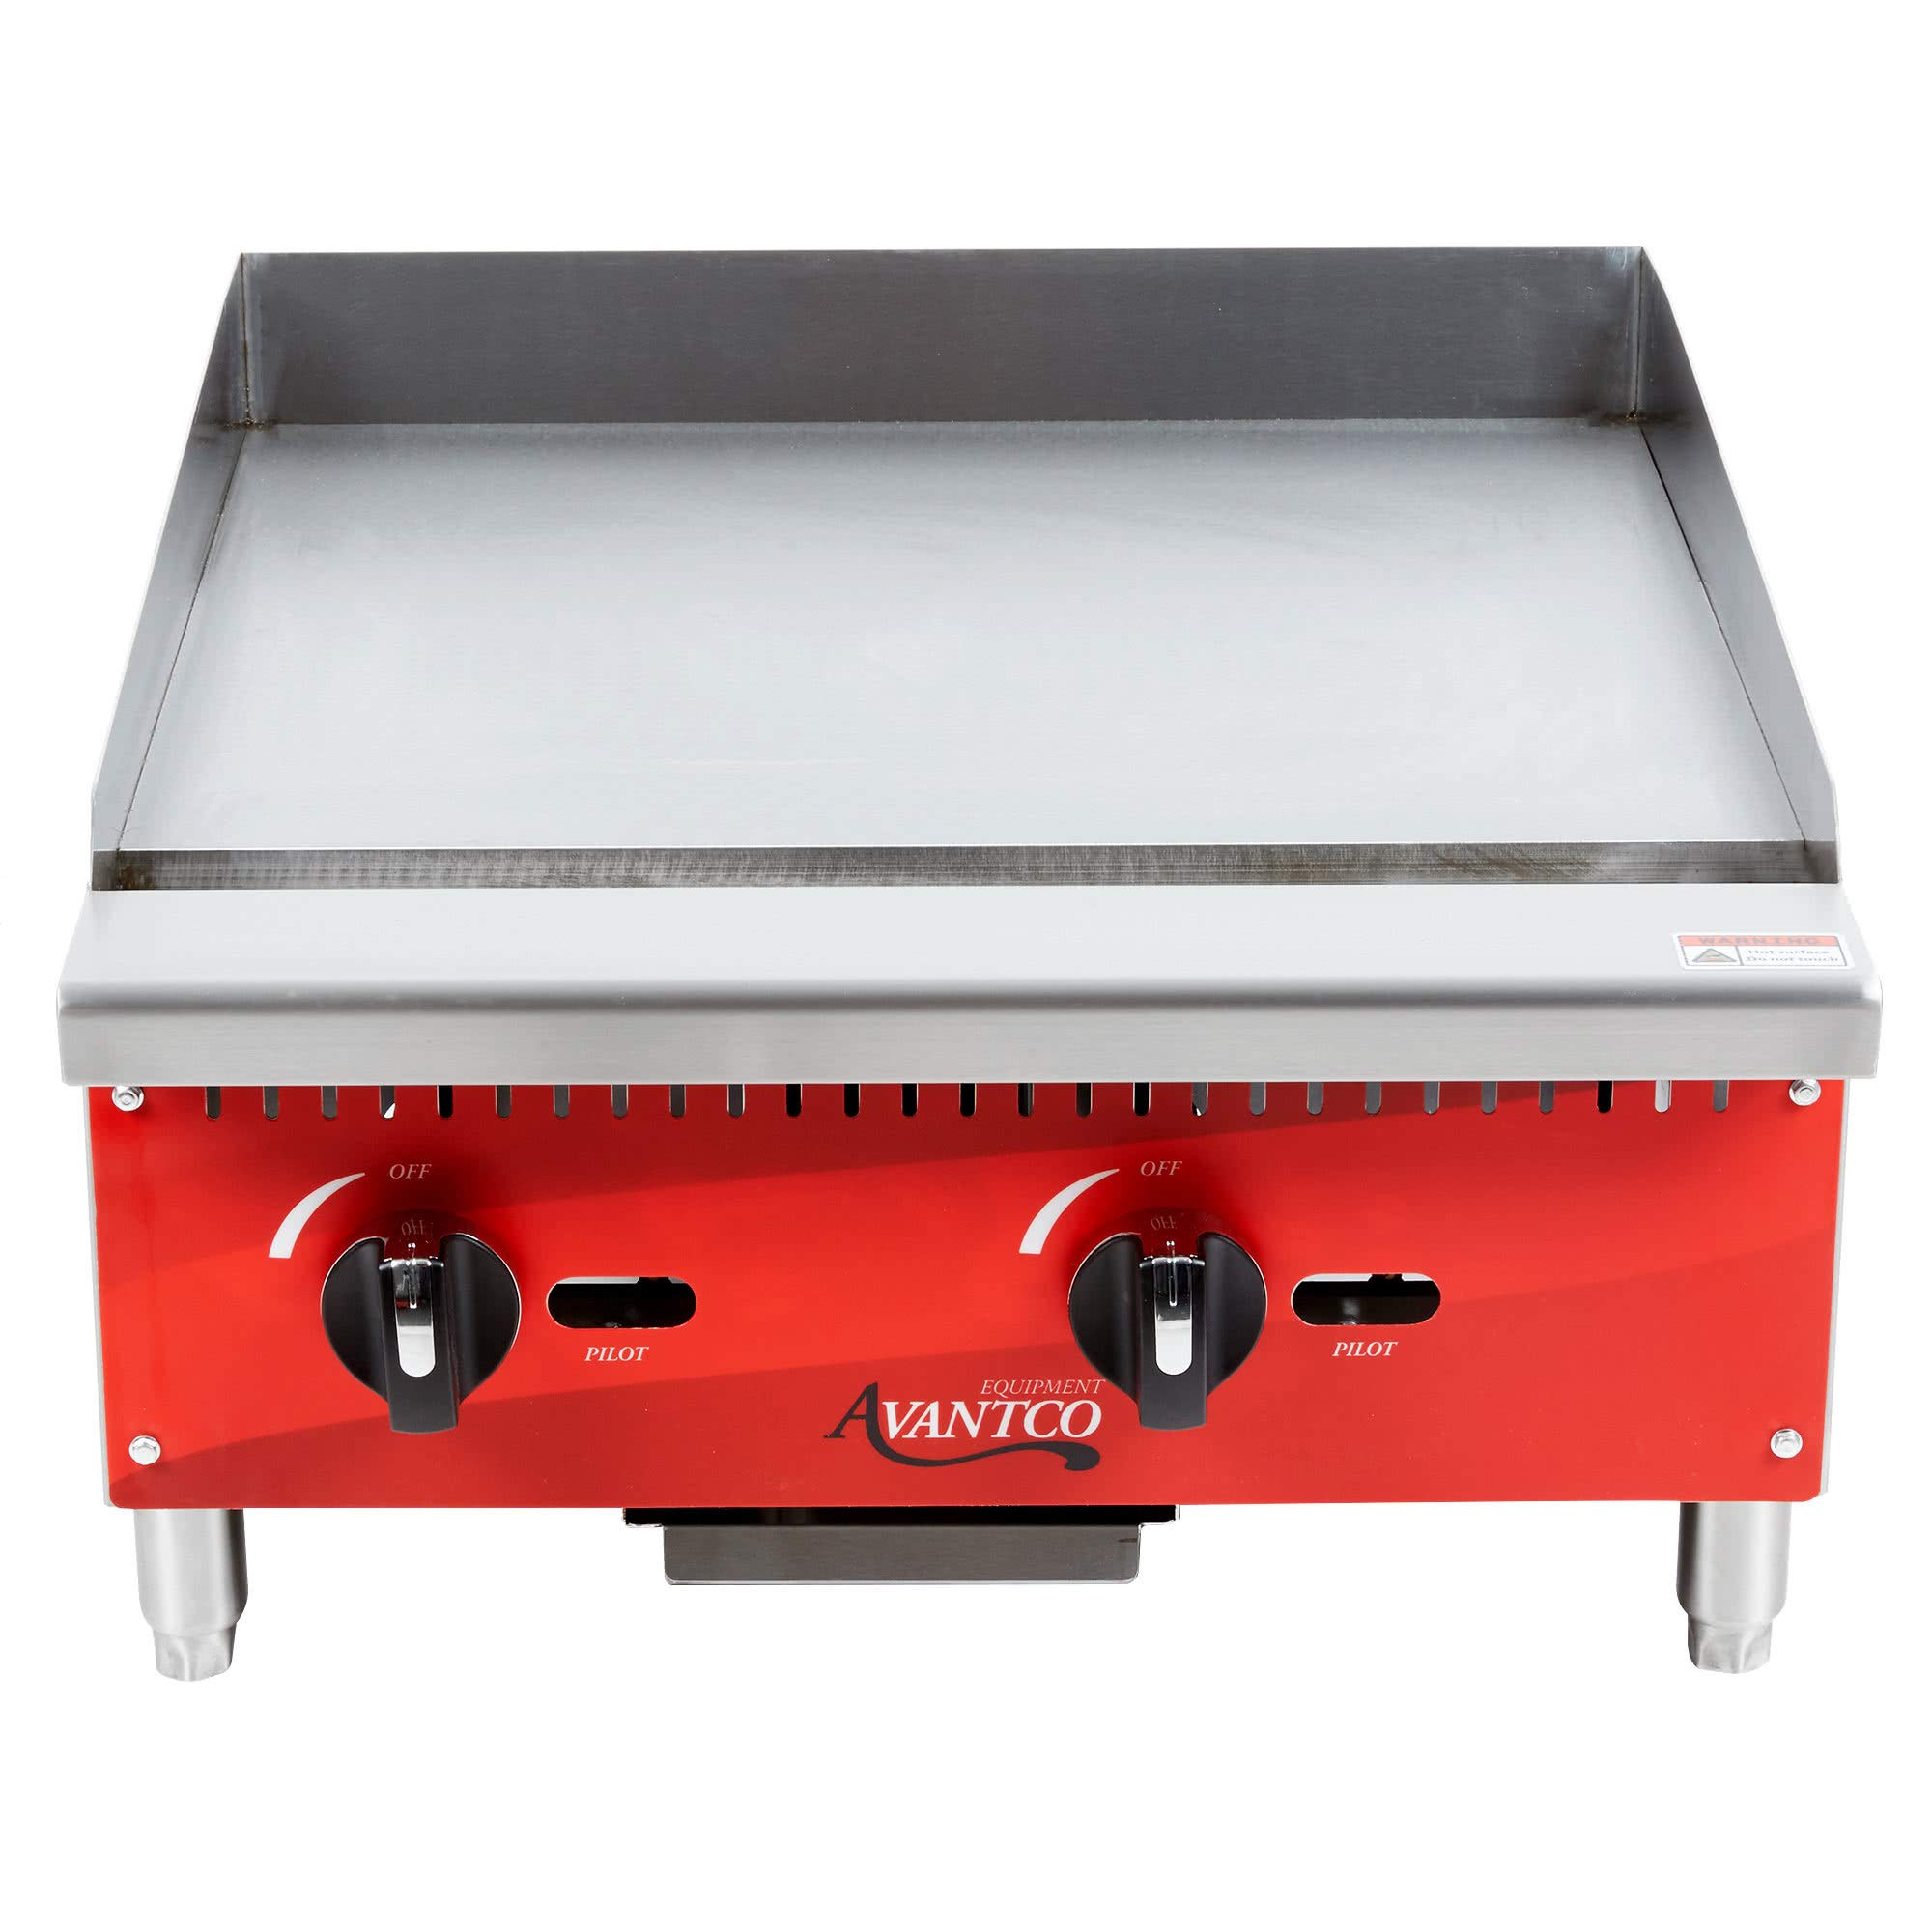 TableTop King AG24MG 24'' Countertop Gas Griddle with Manual Controls - 60,000 BTU